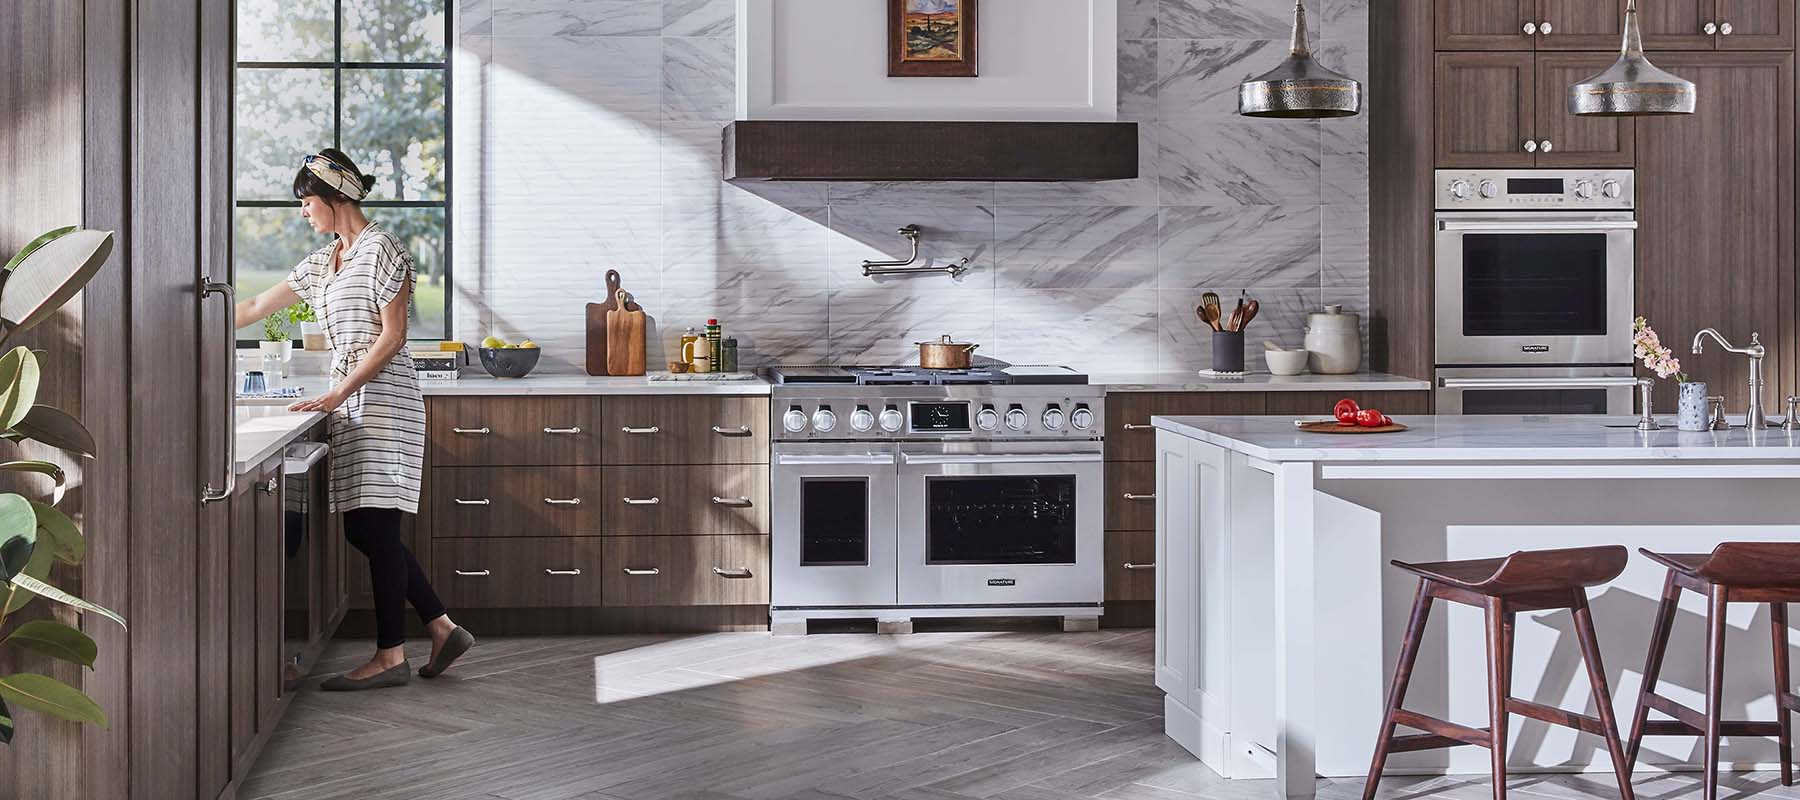 luxury kitchen design with marble backsplash and countertops wood cabinets